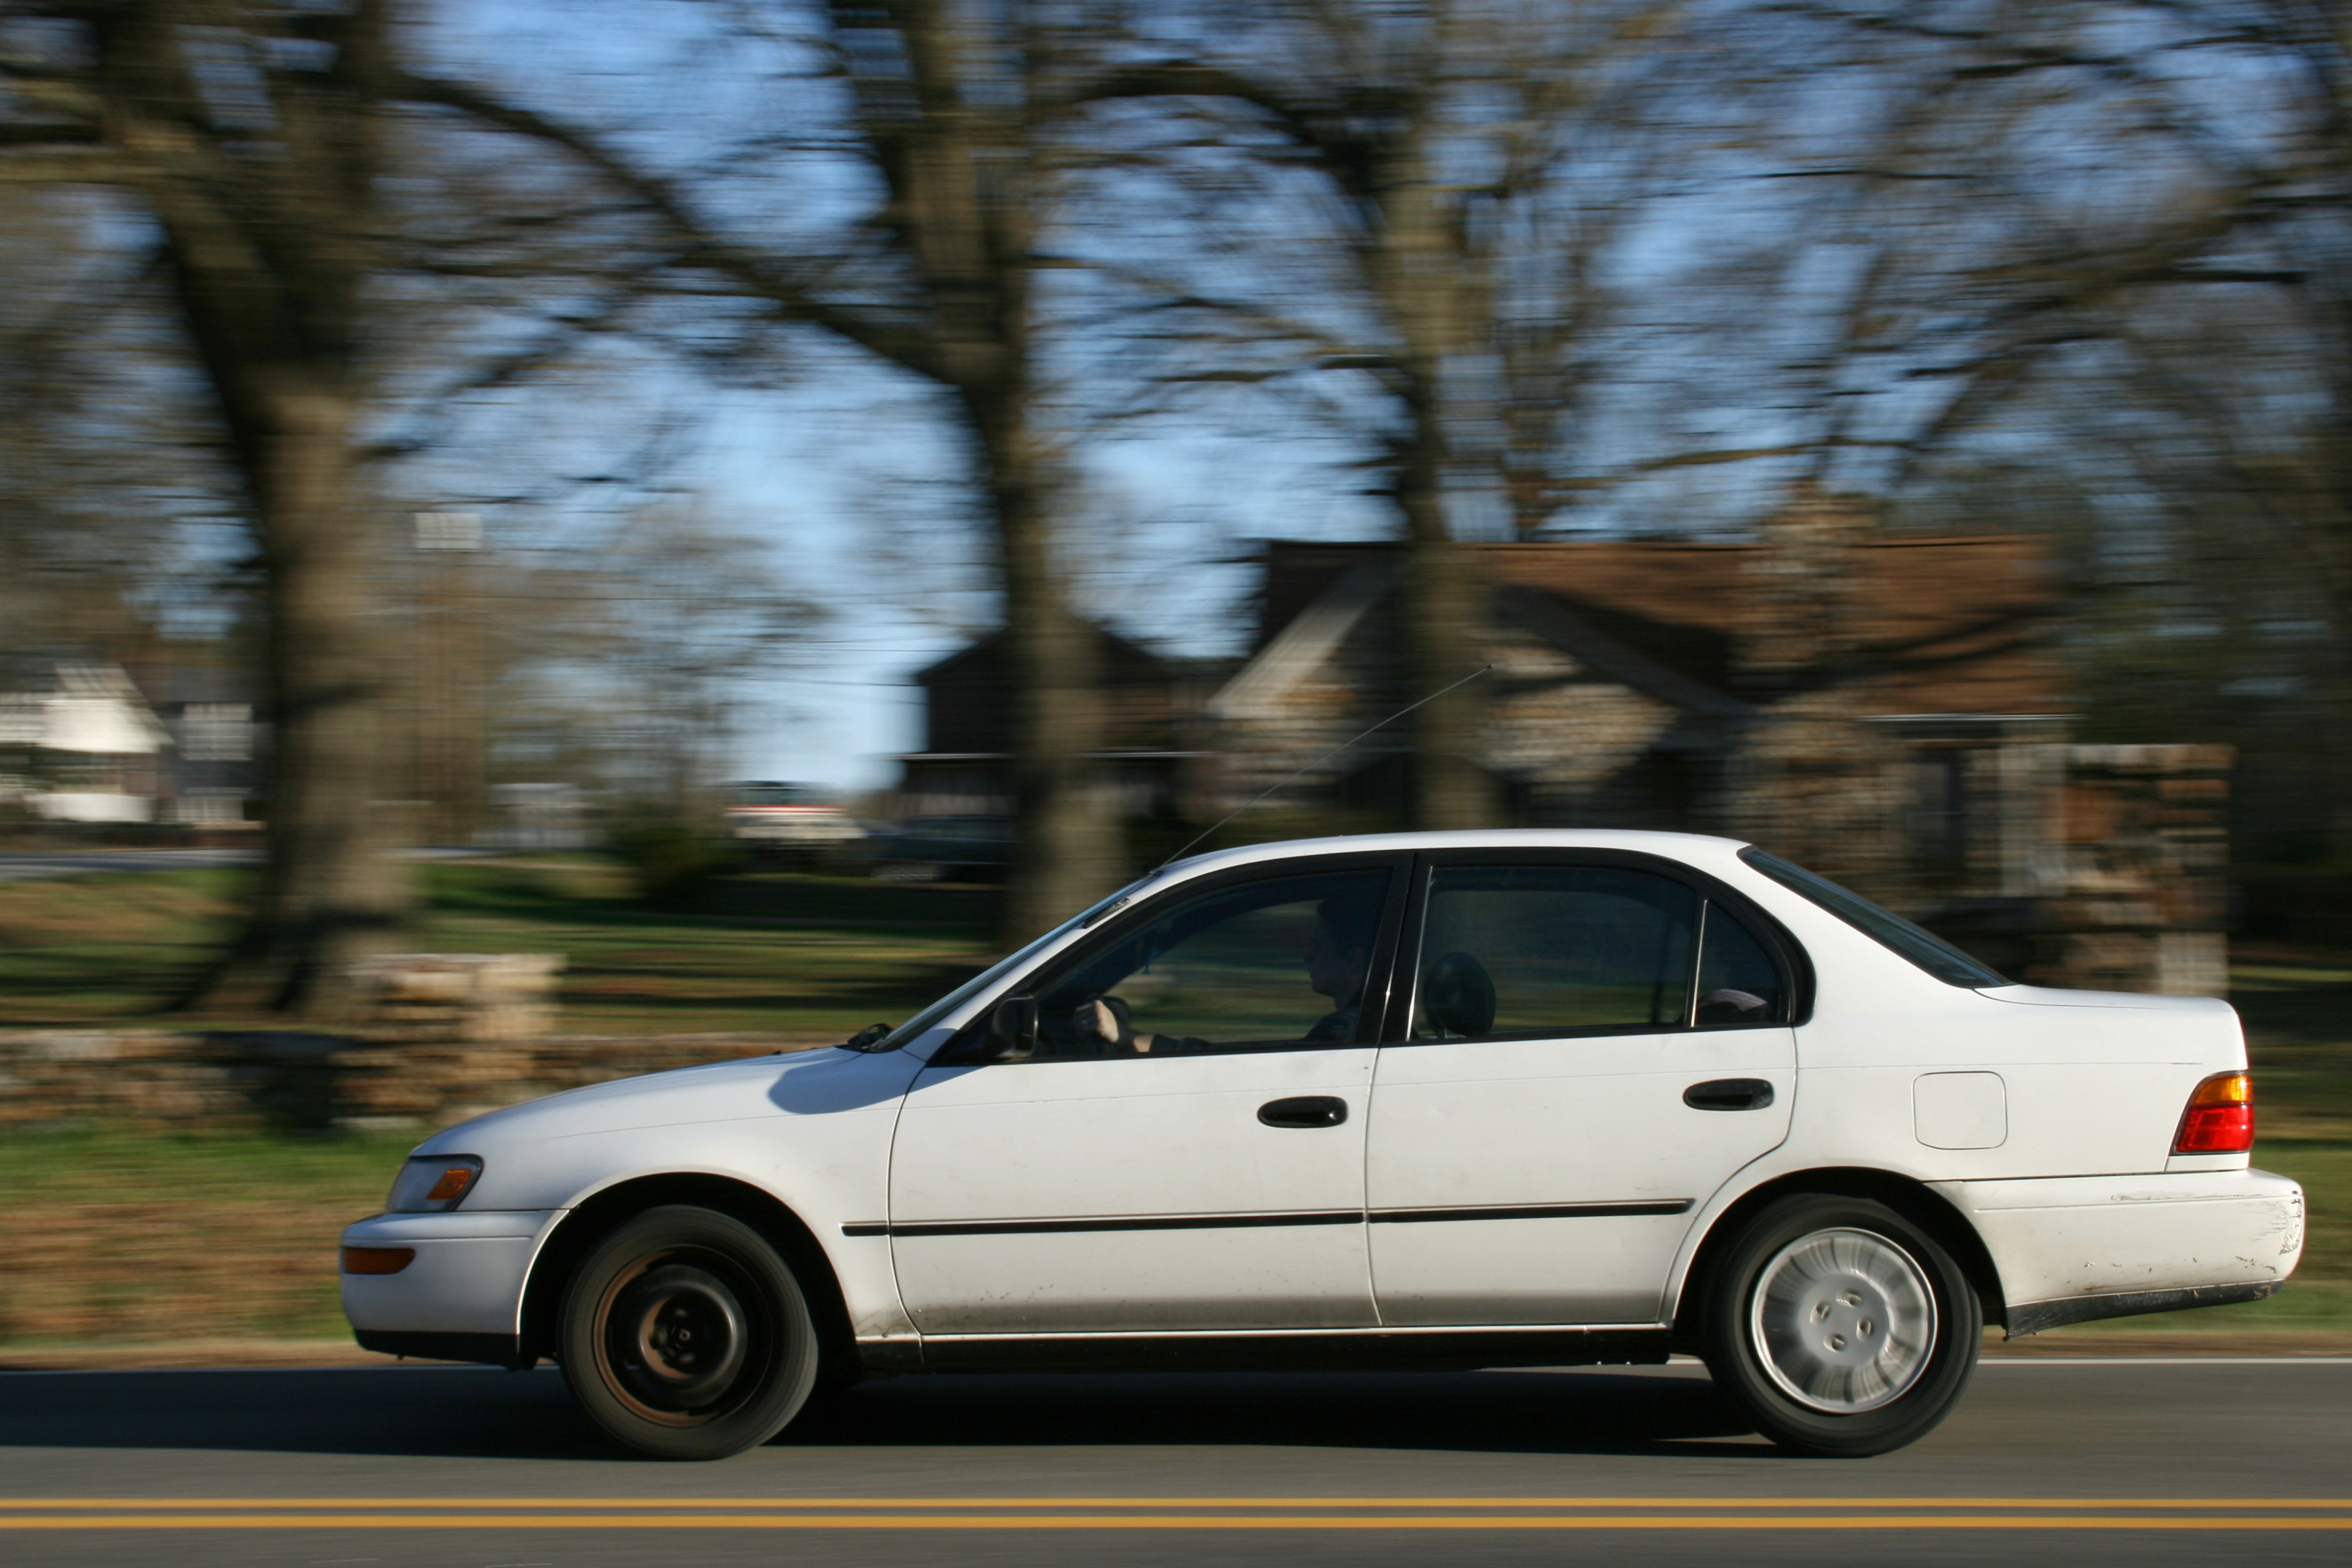 Car Tire Size >> File:2009-03-20 White car EB on E Geer St in Durham.jpg - Wikimedia Commons